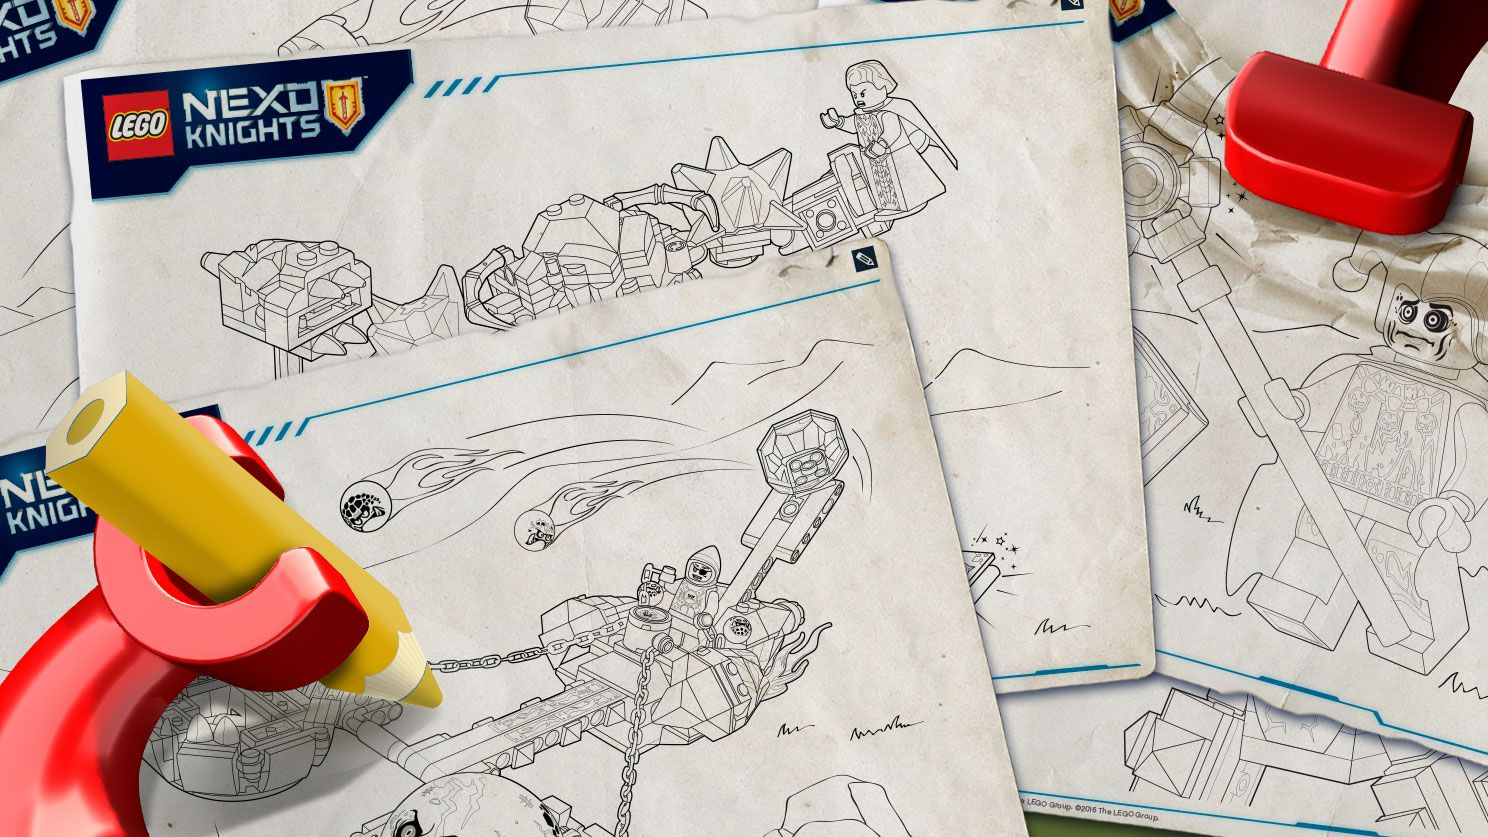 lego nexo knights products coloring sheets   lego